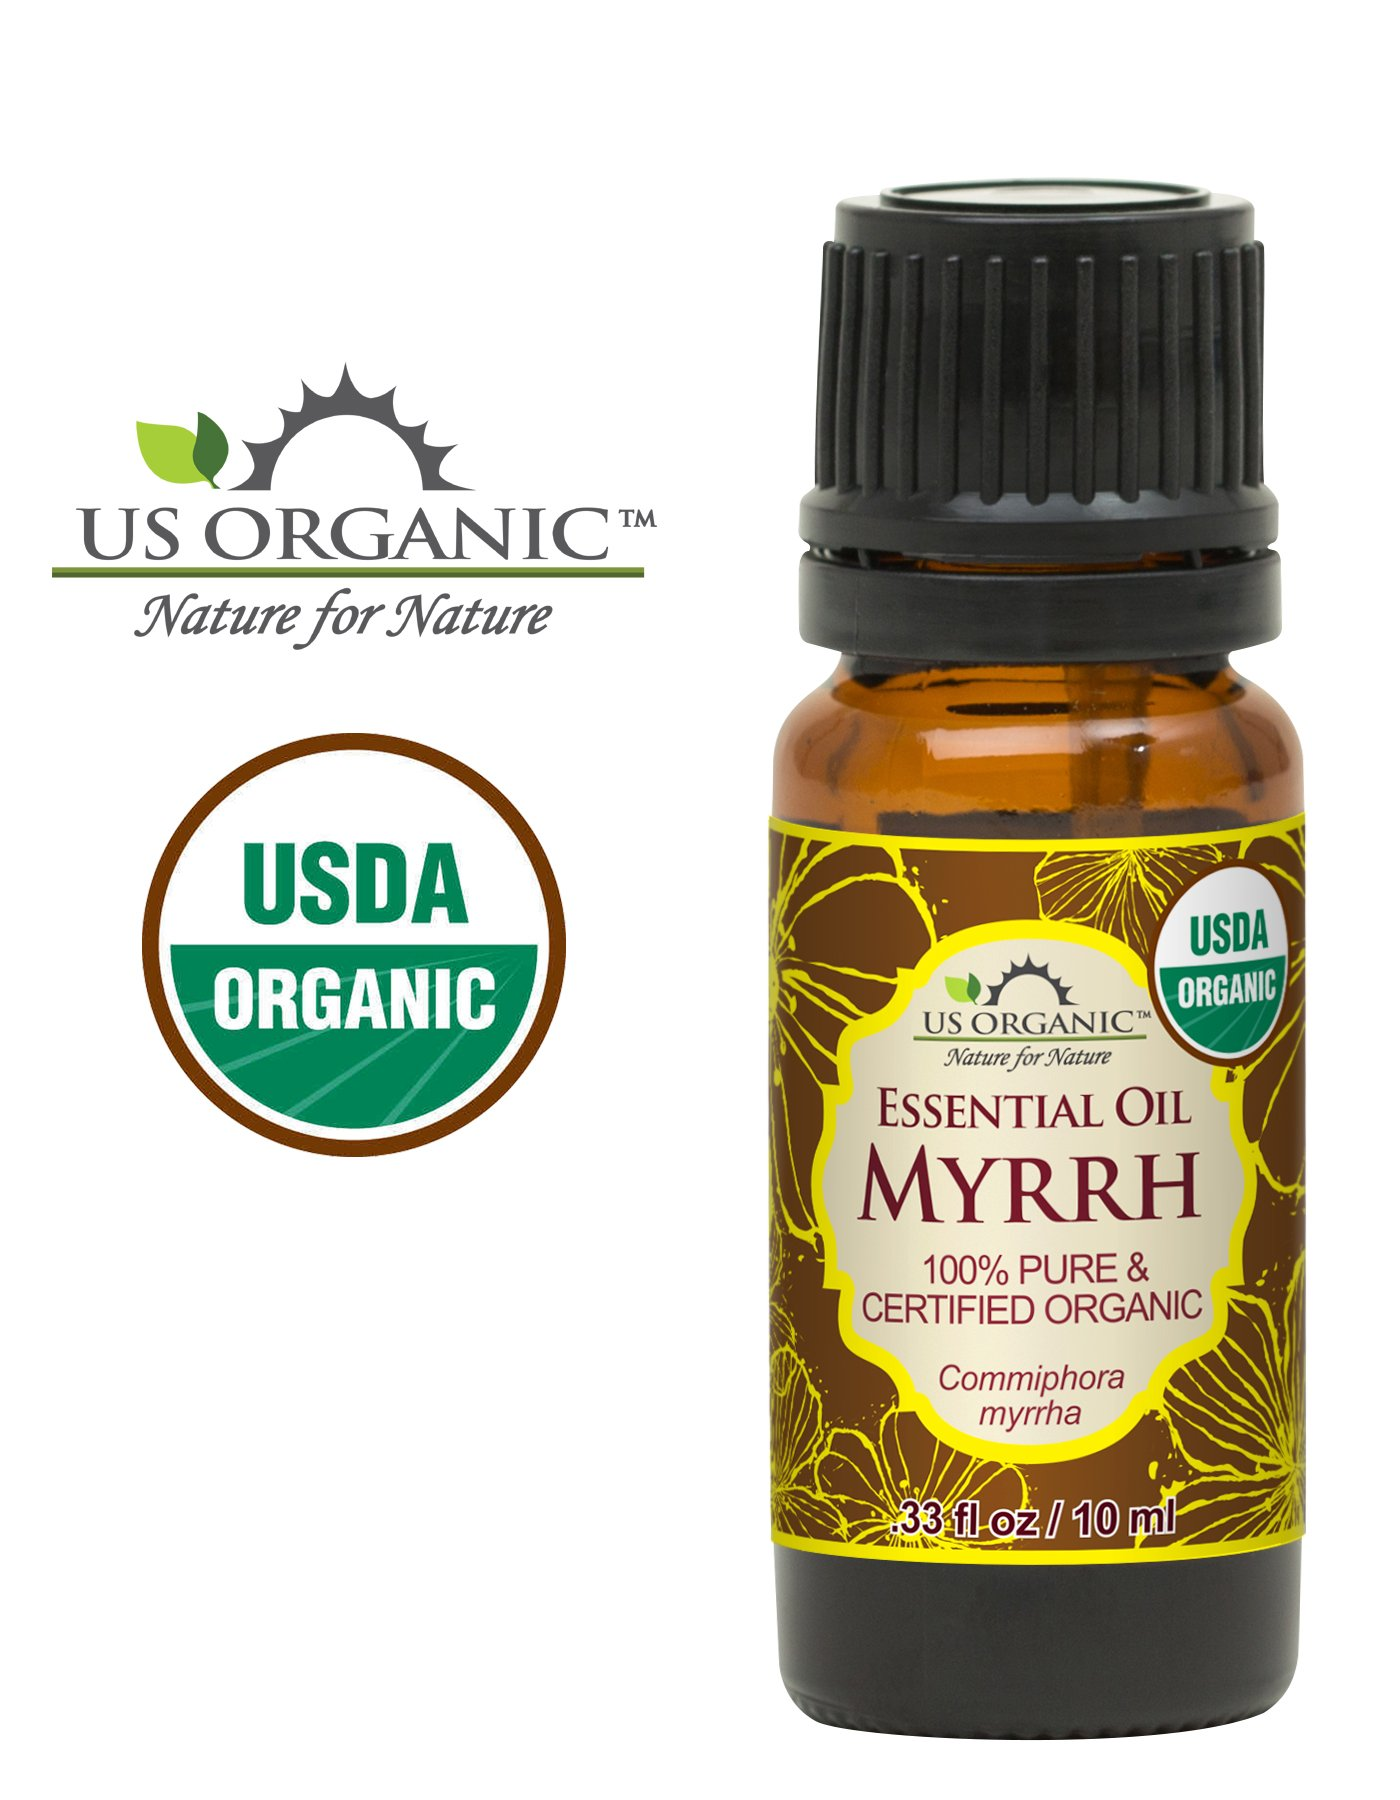 US Organic 100% Pure Myrrh (Commiphora myrrha) Essential Oil - Directly sourced from The Horn of Africa - USDA Certified Organic - Use Topically or in Diffuser - Suitable for All Skin Types (10 ml) by US Organic